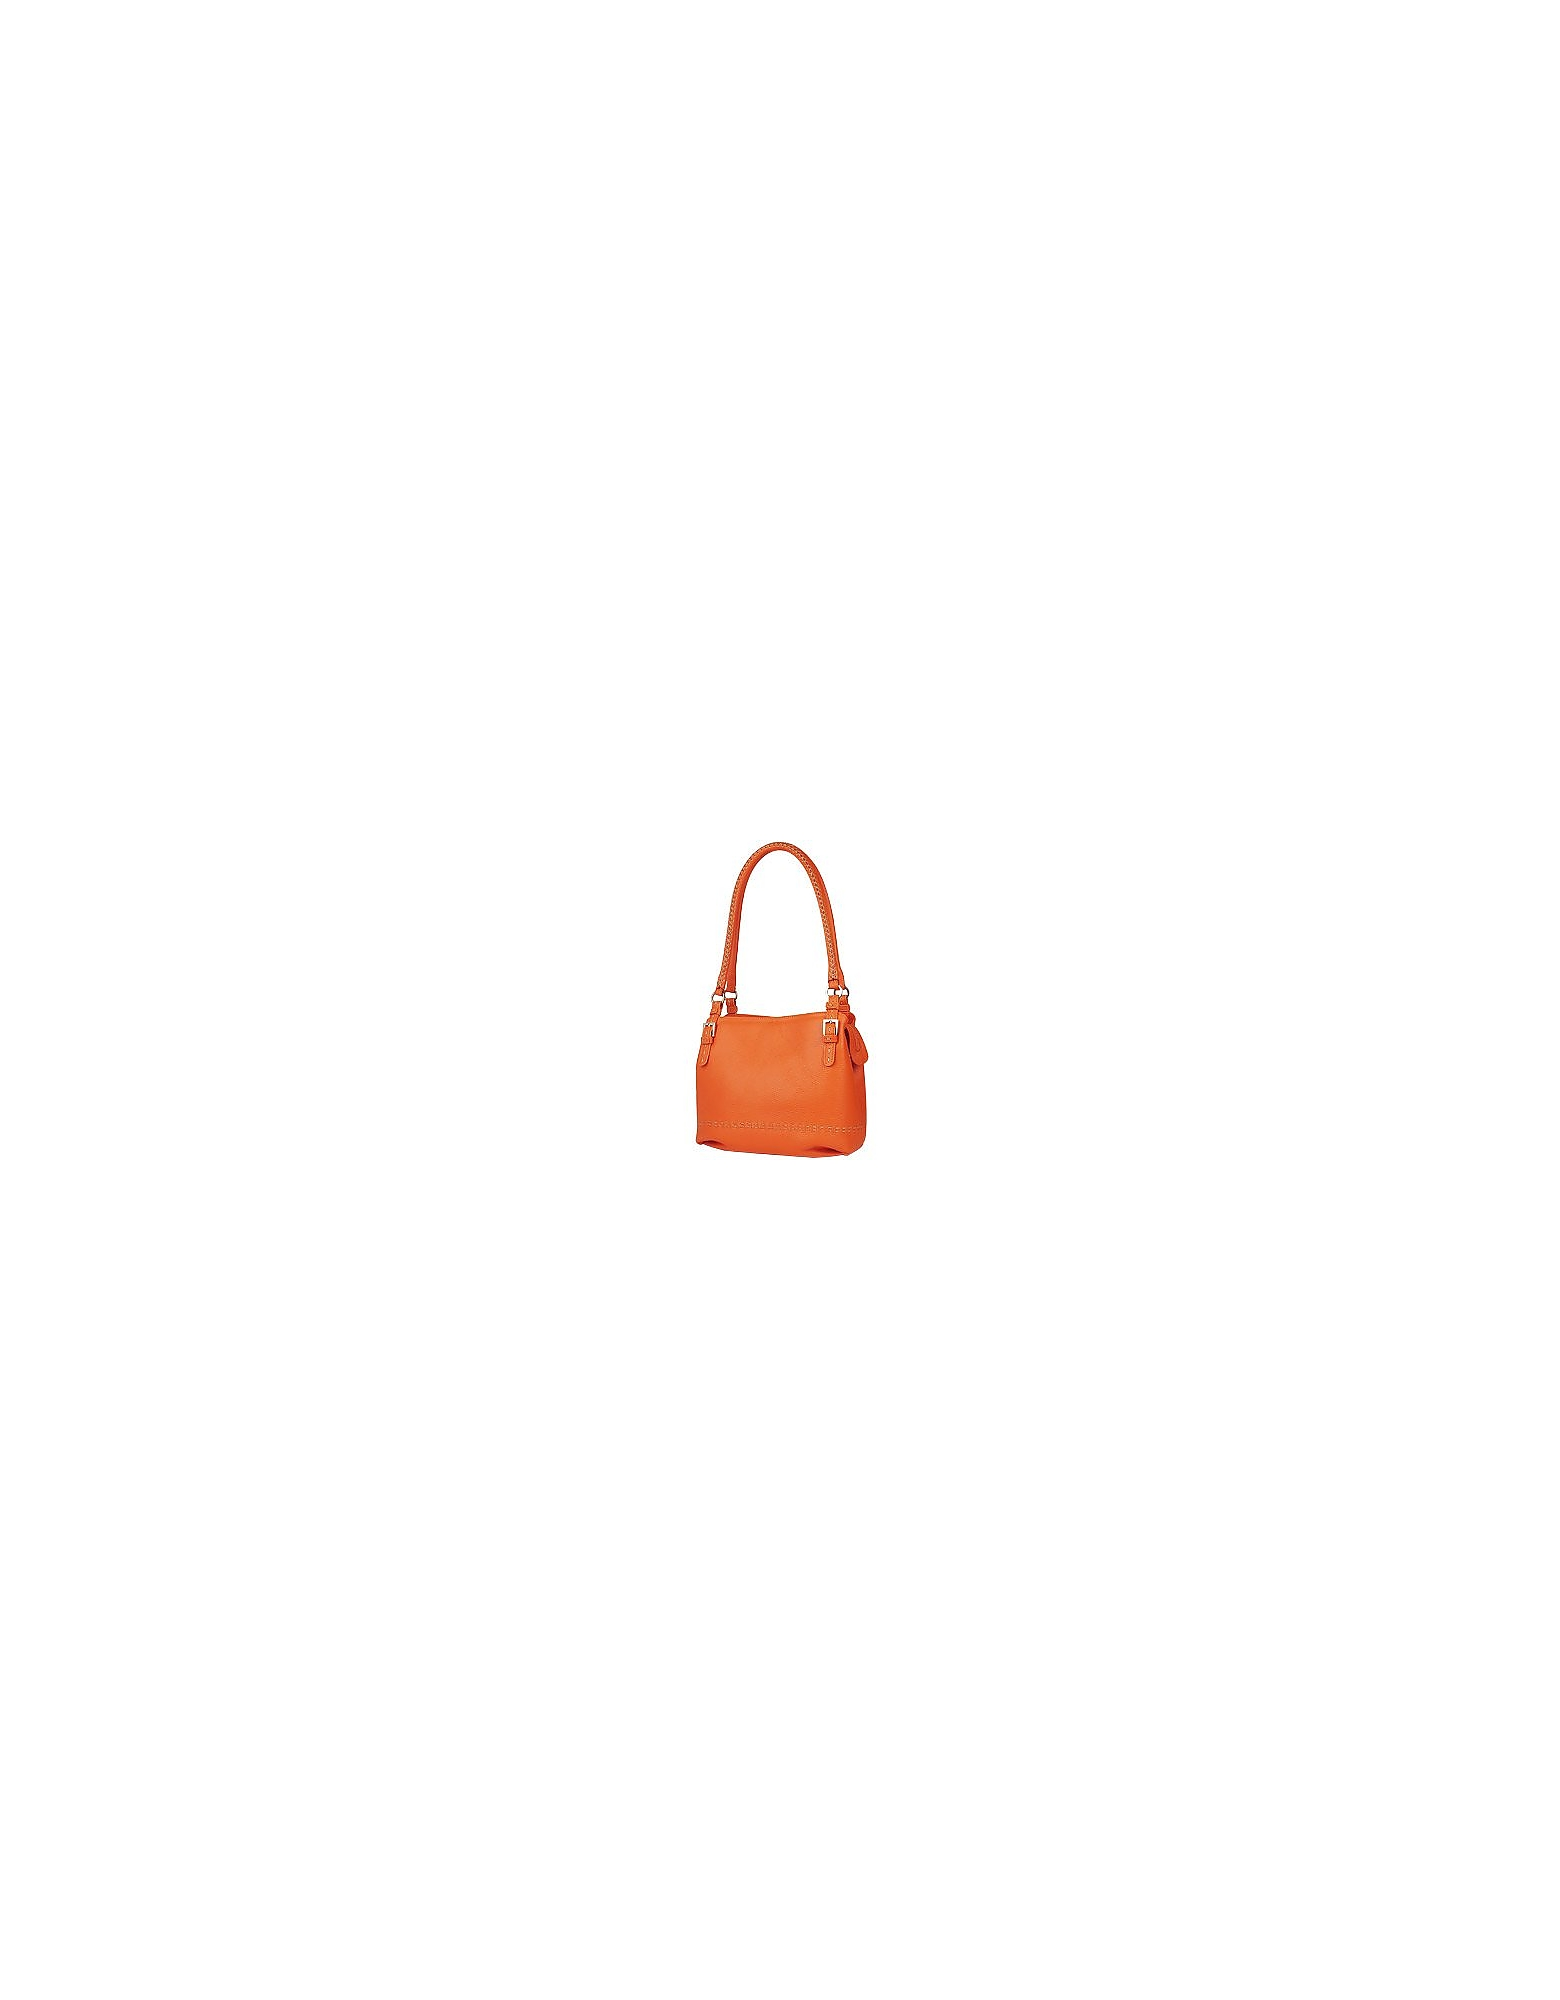 Fontanelli Designer Handbags, Orange Stiched Soft Leather Handbag